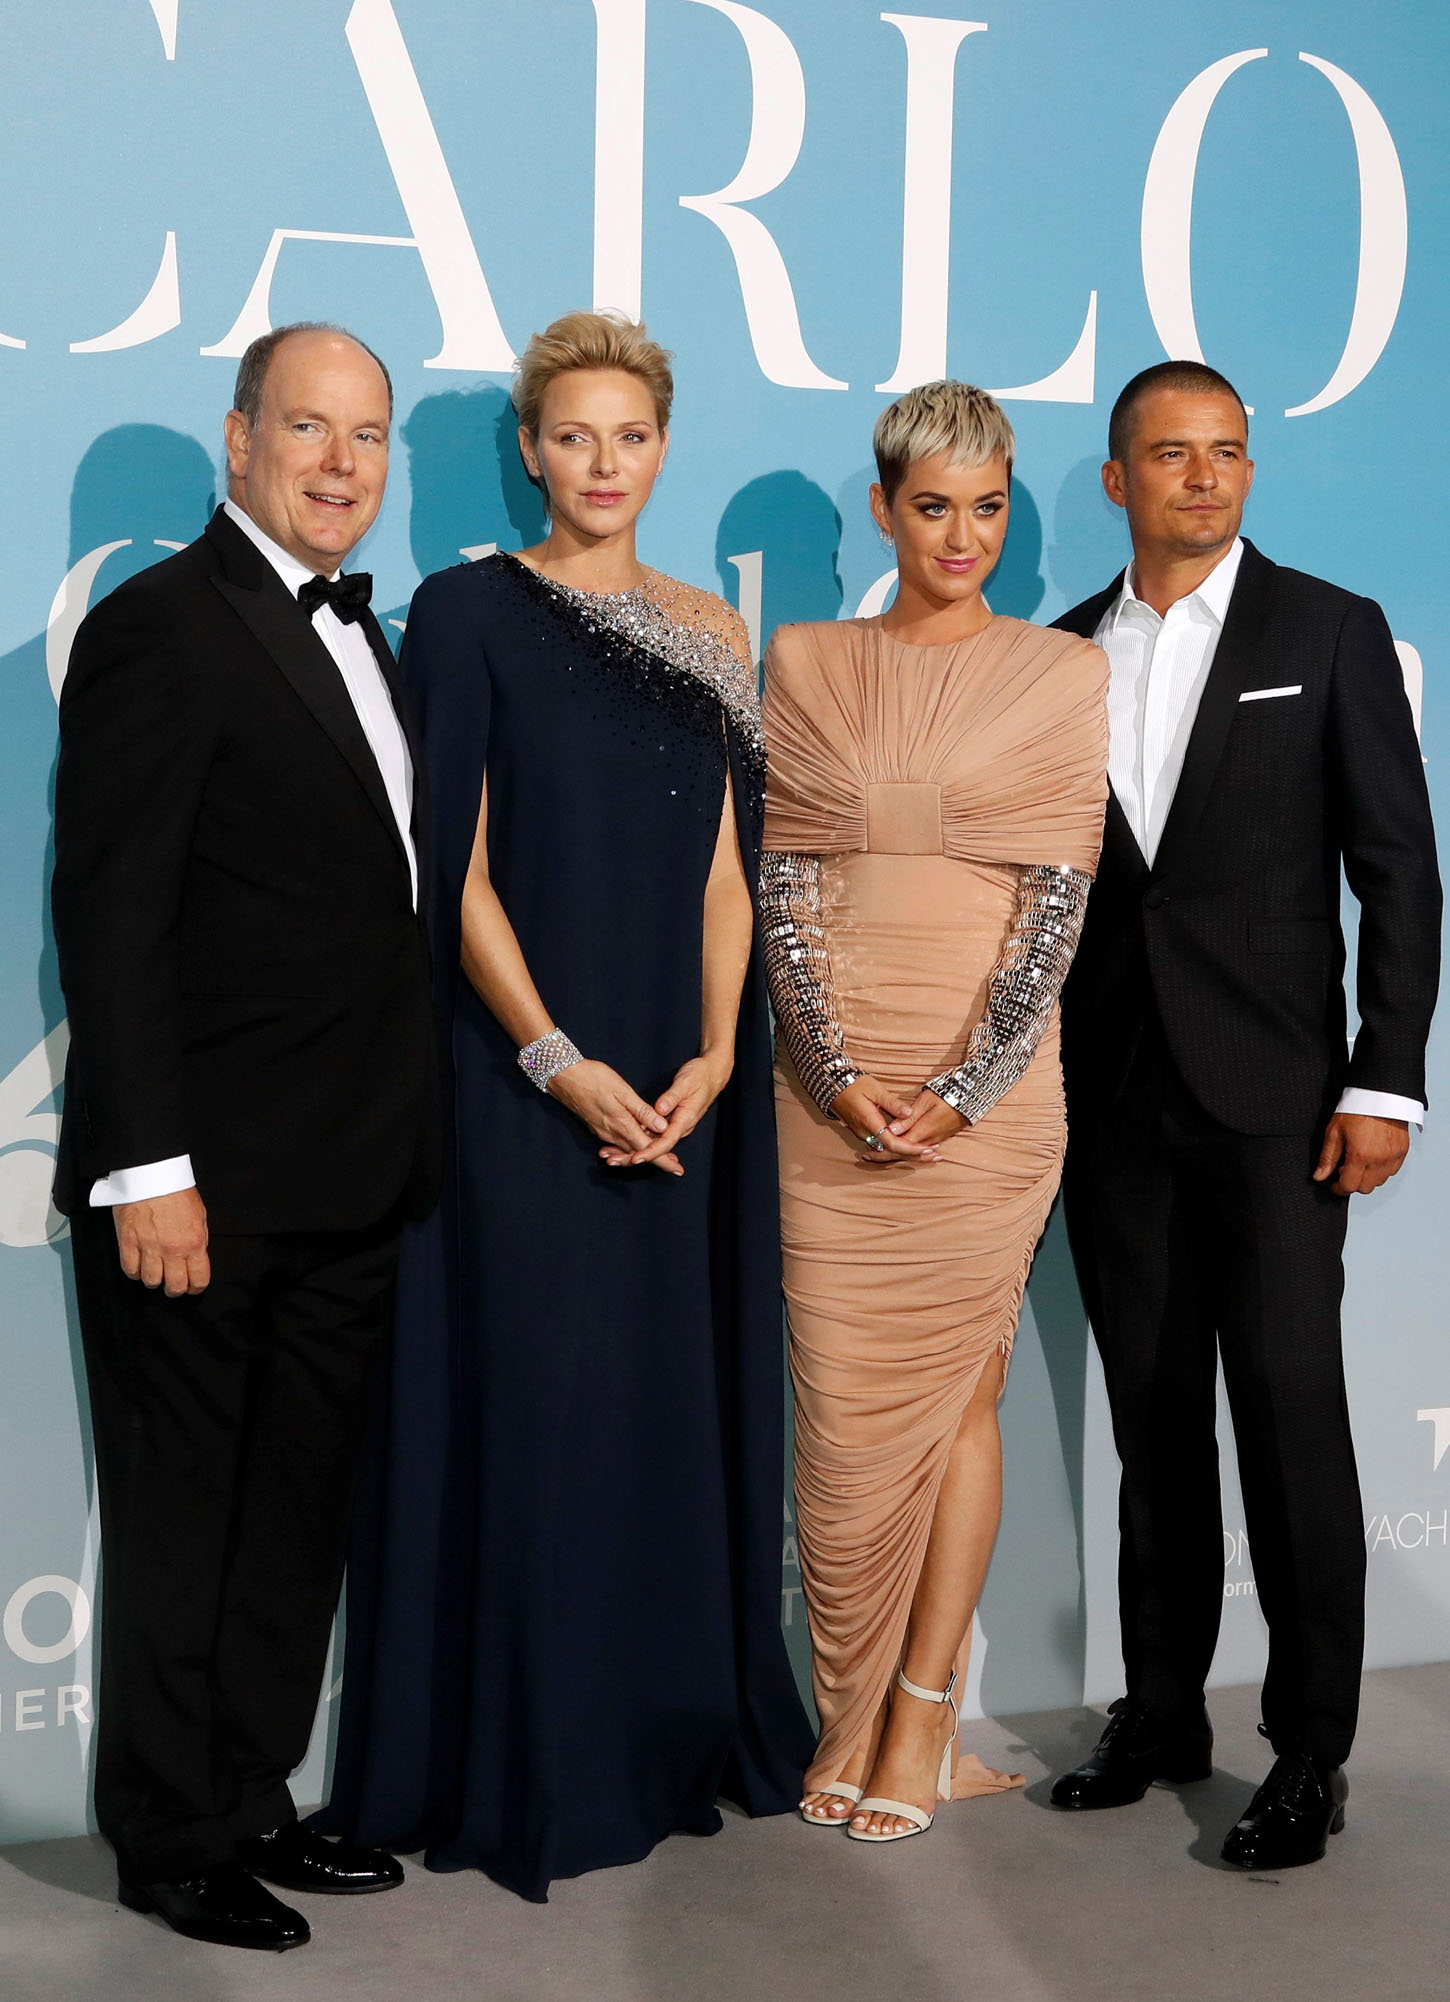 Monaco's Prince Albert II and Princess Charlene pose with singer Katy Perry and British actor Orlando Bloom upon their arrival for the Monte-Carlo Gala for the Global Ocean in Monaco, September 26, 2018. REUTERS/Eric Gaillard